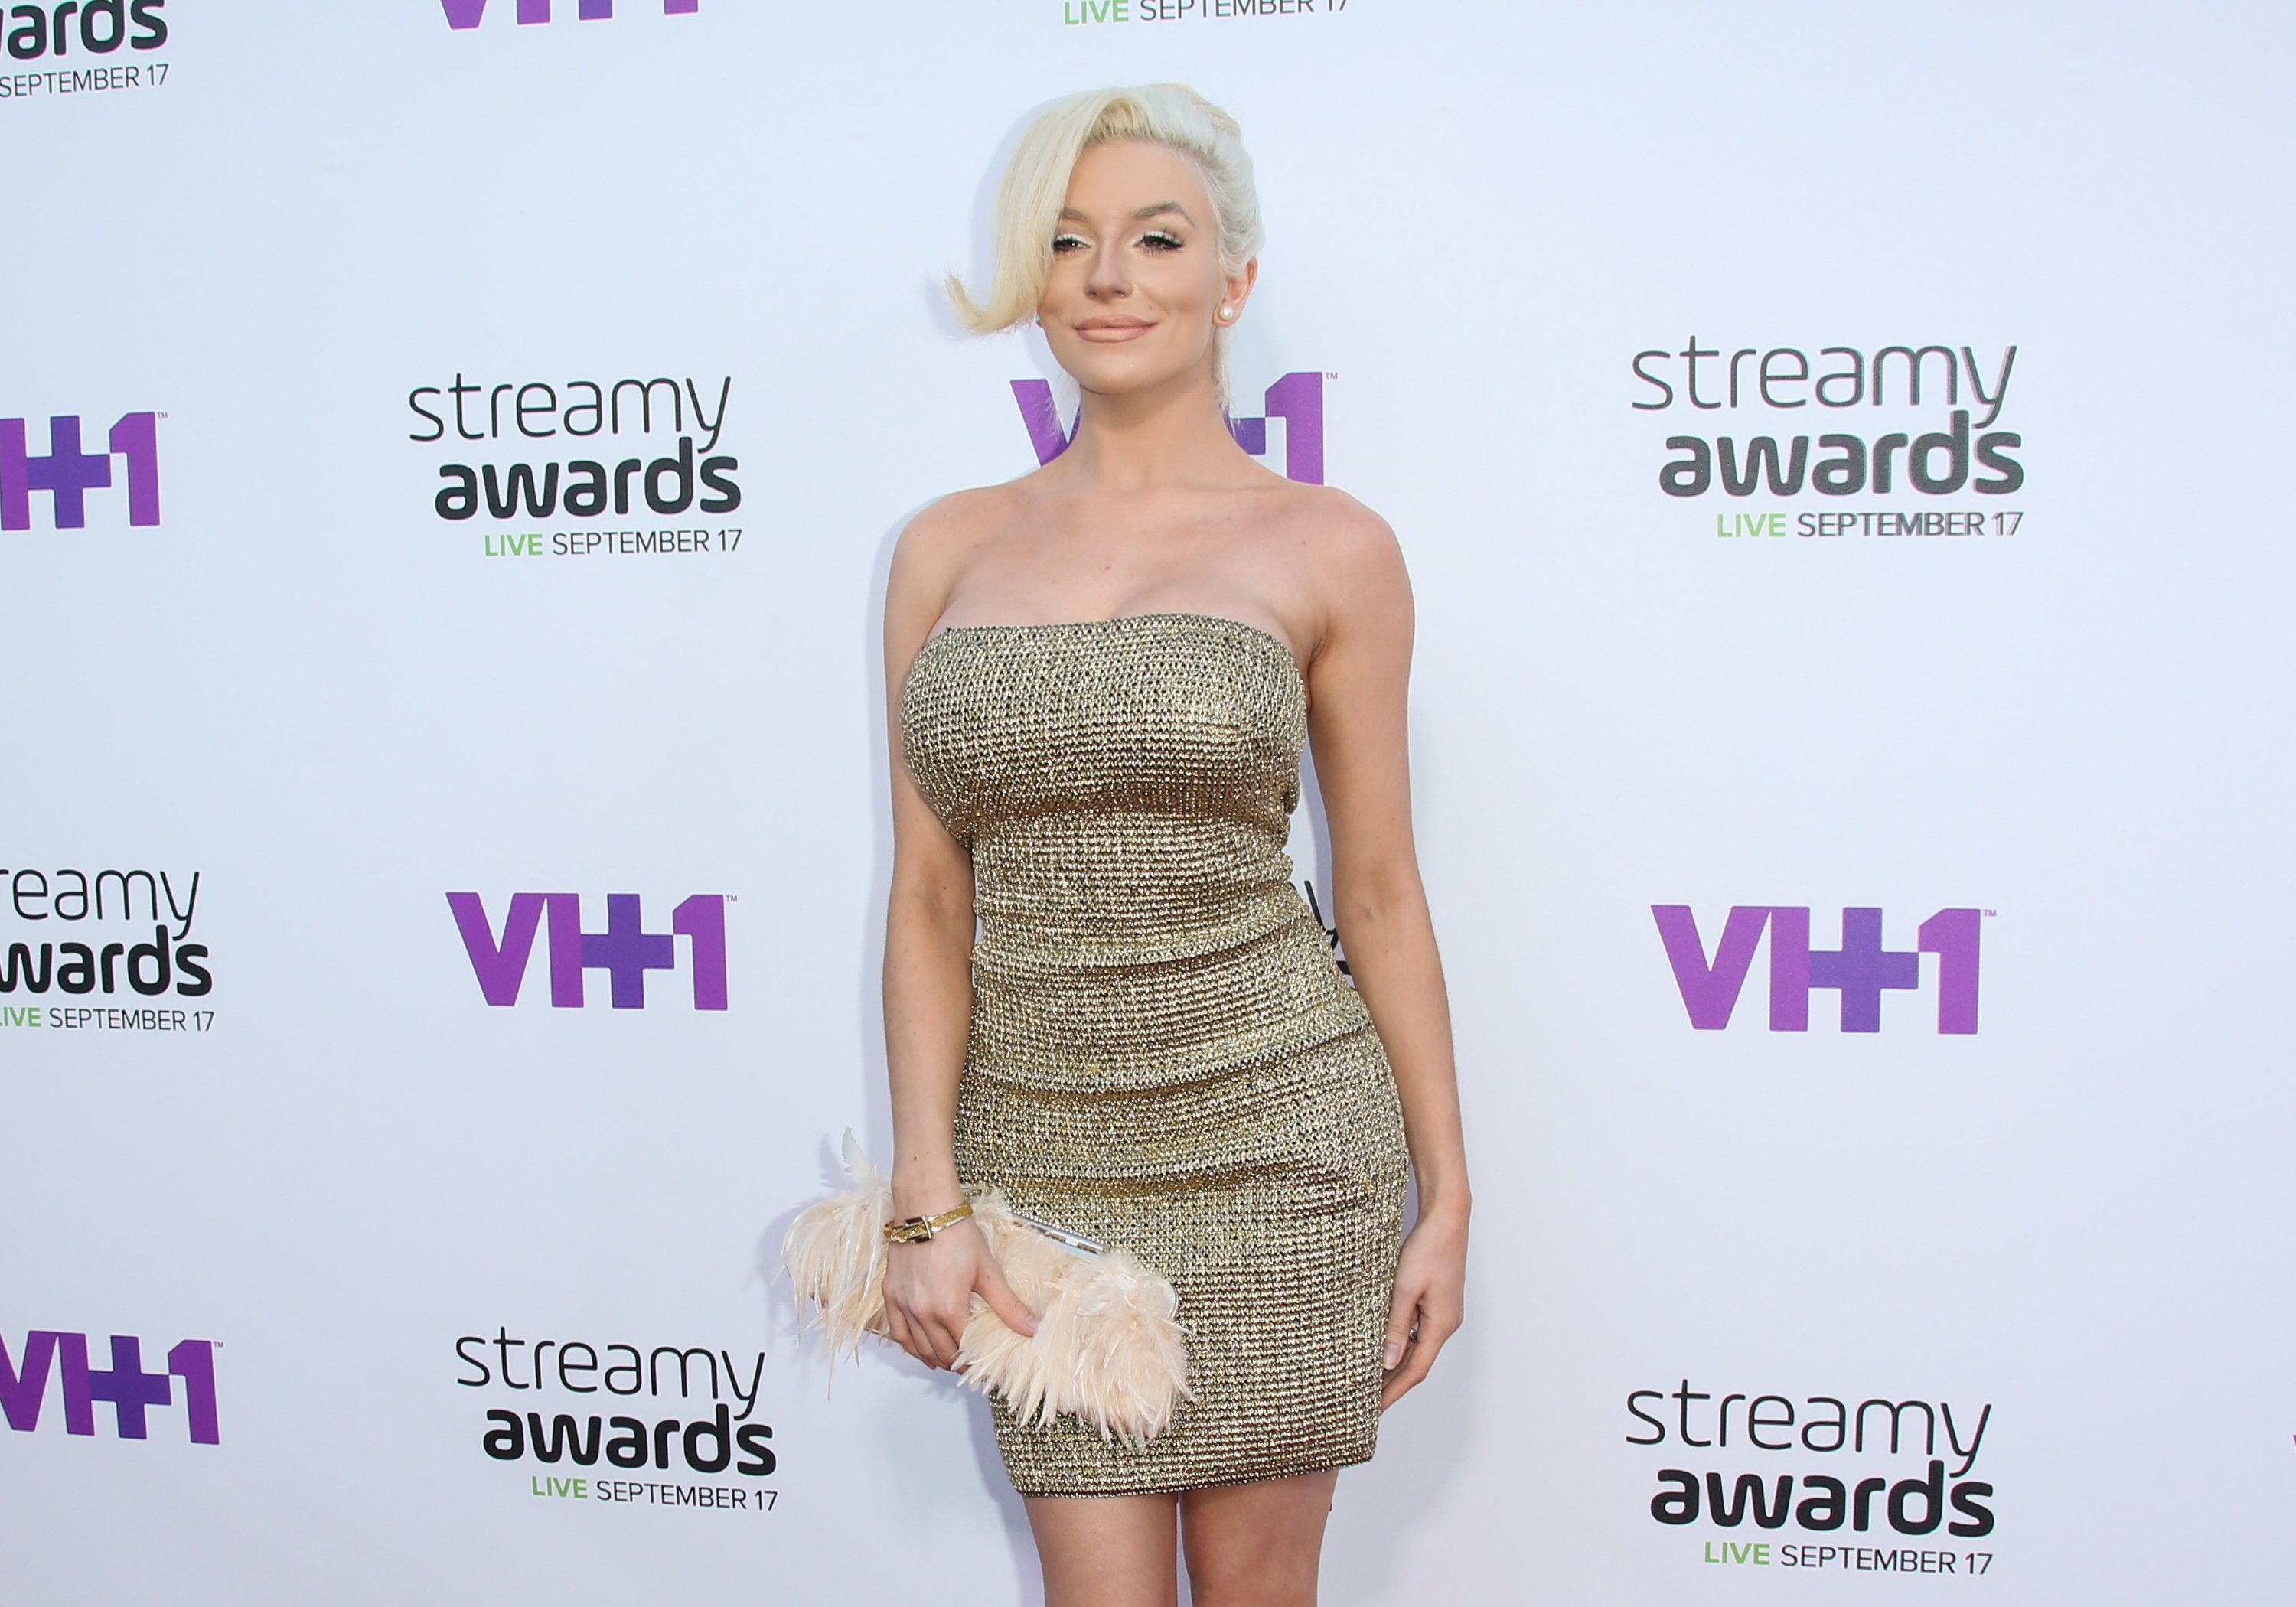 LOS ANGELES, CA - SEPTEMBER 17:  Reality TV Personality Courtney Stodden attends the 5th Annual Streamy Awards at The Hollywood Palladium on September 17, 2015 in Los Angeles, California.  (Photo by Paul Archuleta/FilmMagic)